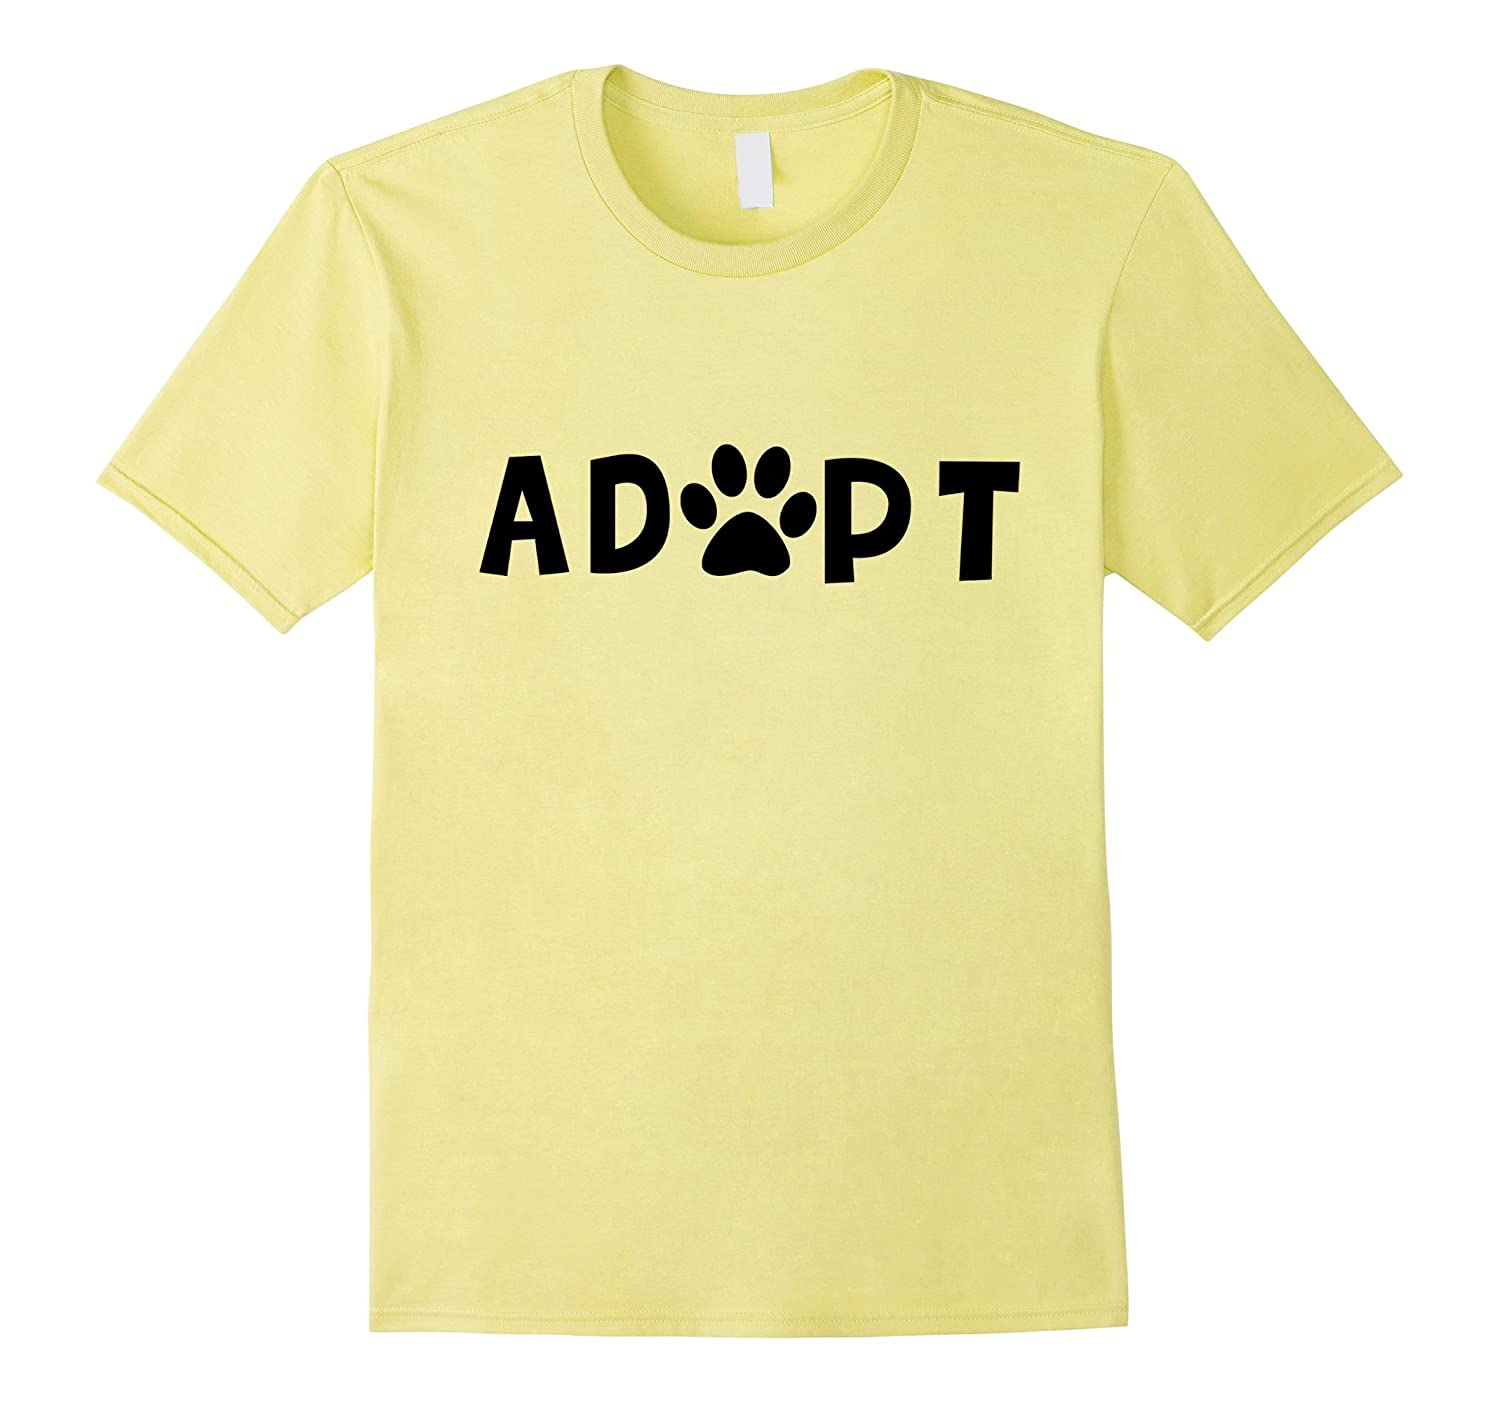 4f4d07fe7961 Adopt Dog or Cat Pet Rescue Animal Shelter Adoption T-Shirt-TH - TEEHELEN